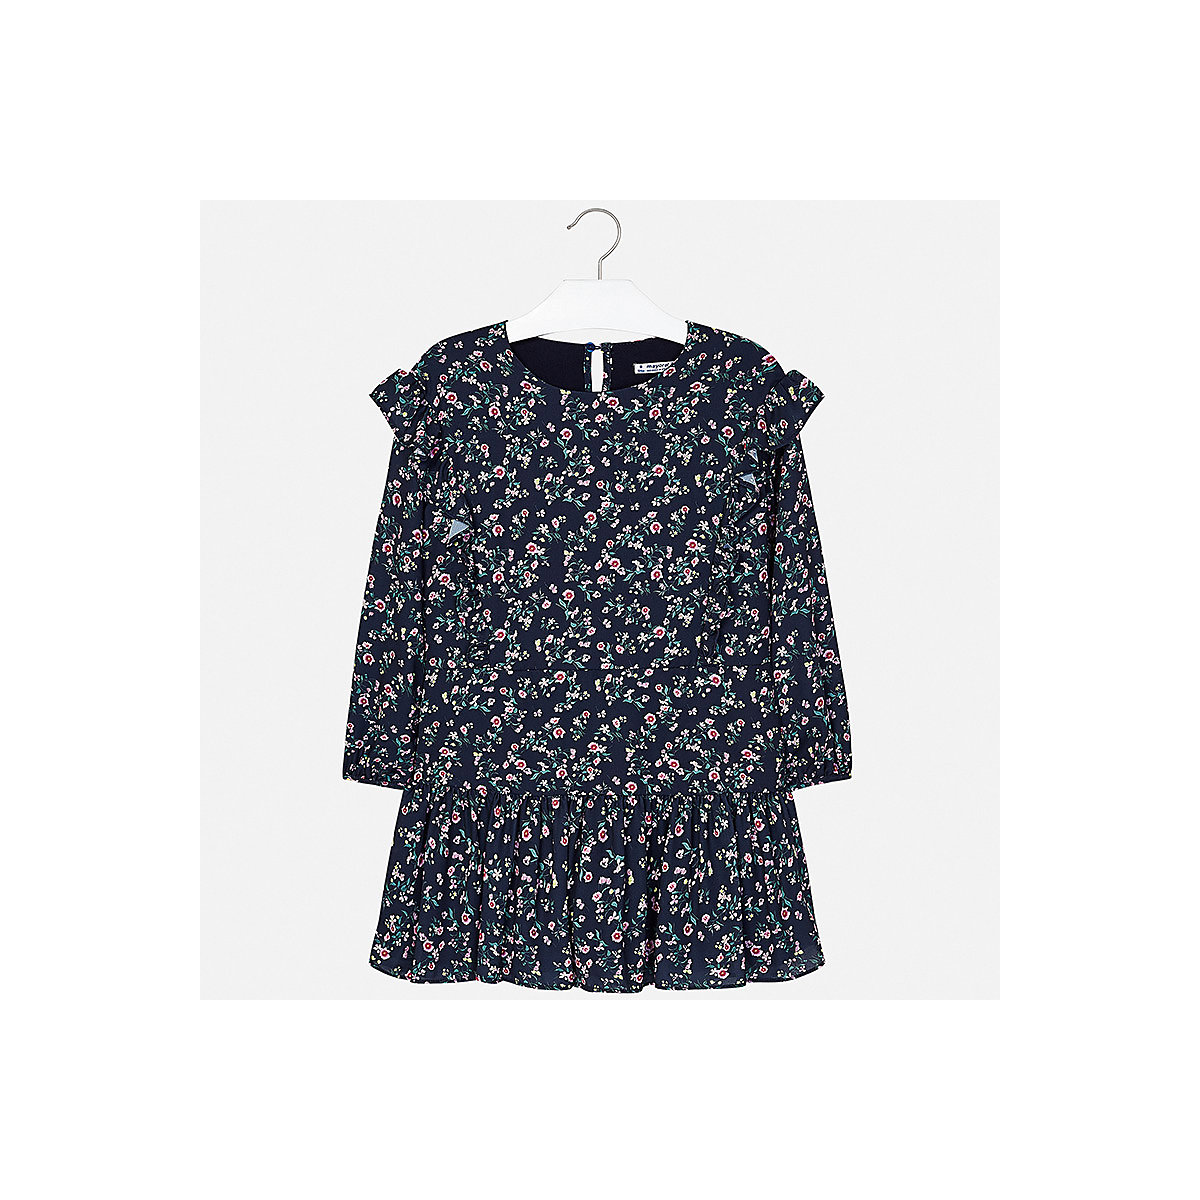 MAYORAL Dresses 8849478 Polyester Casual children clothing